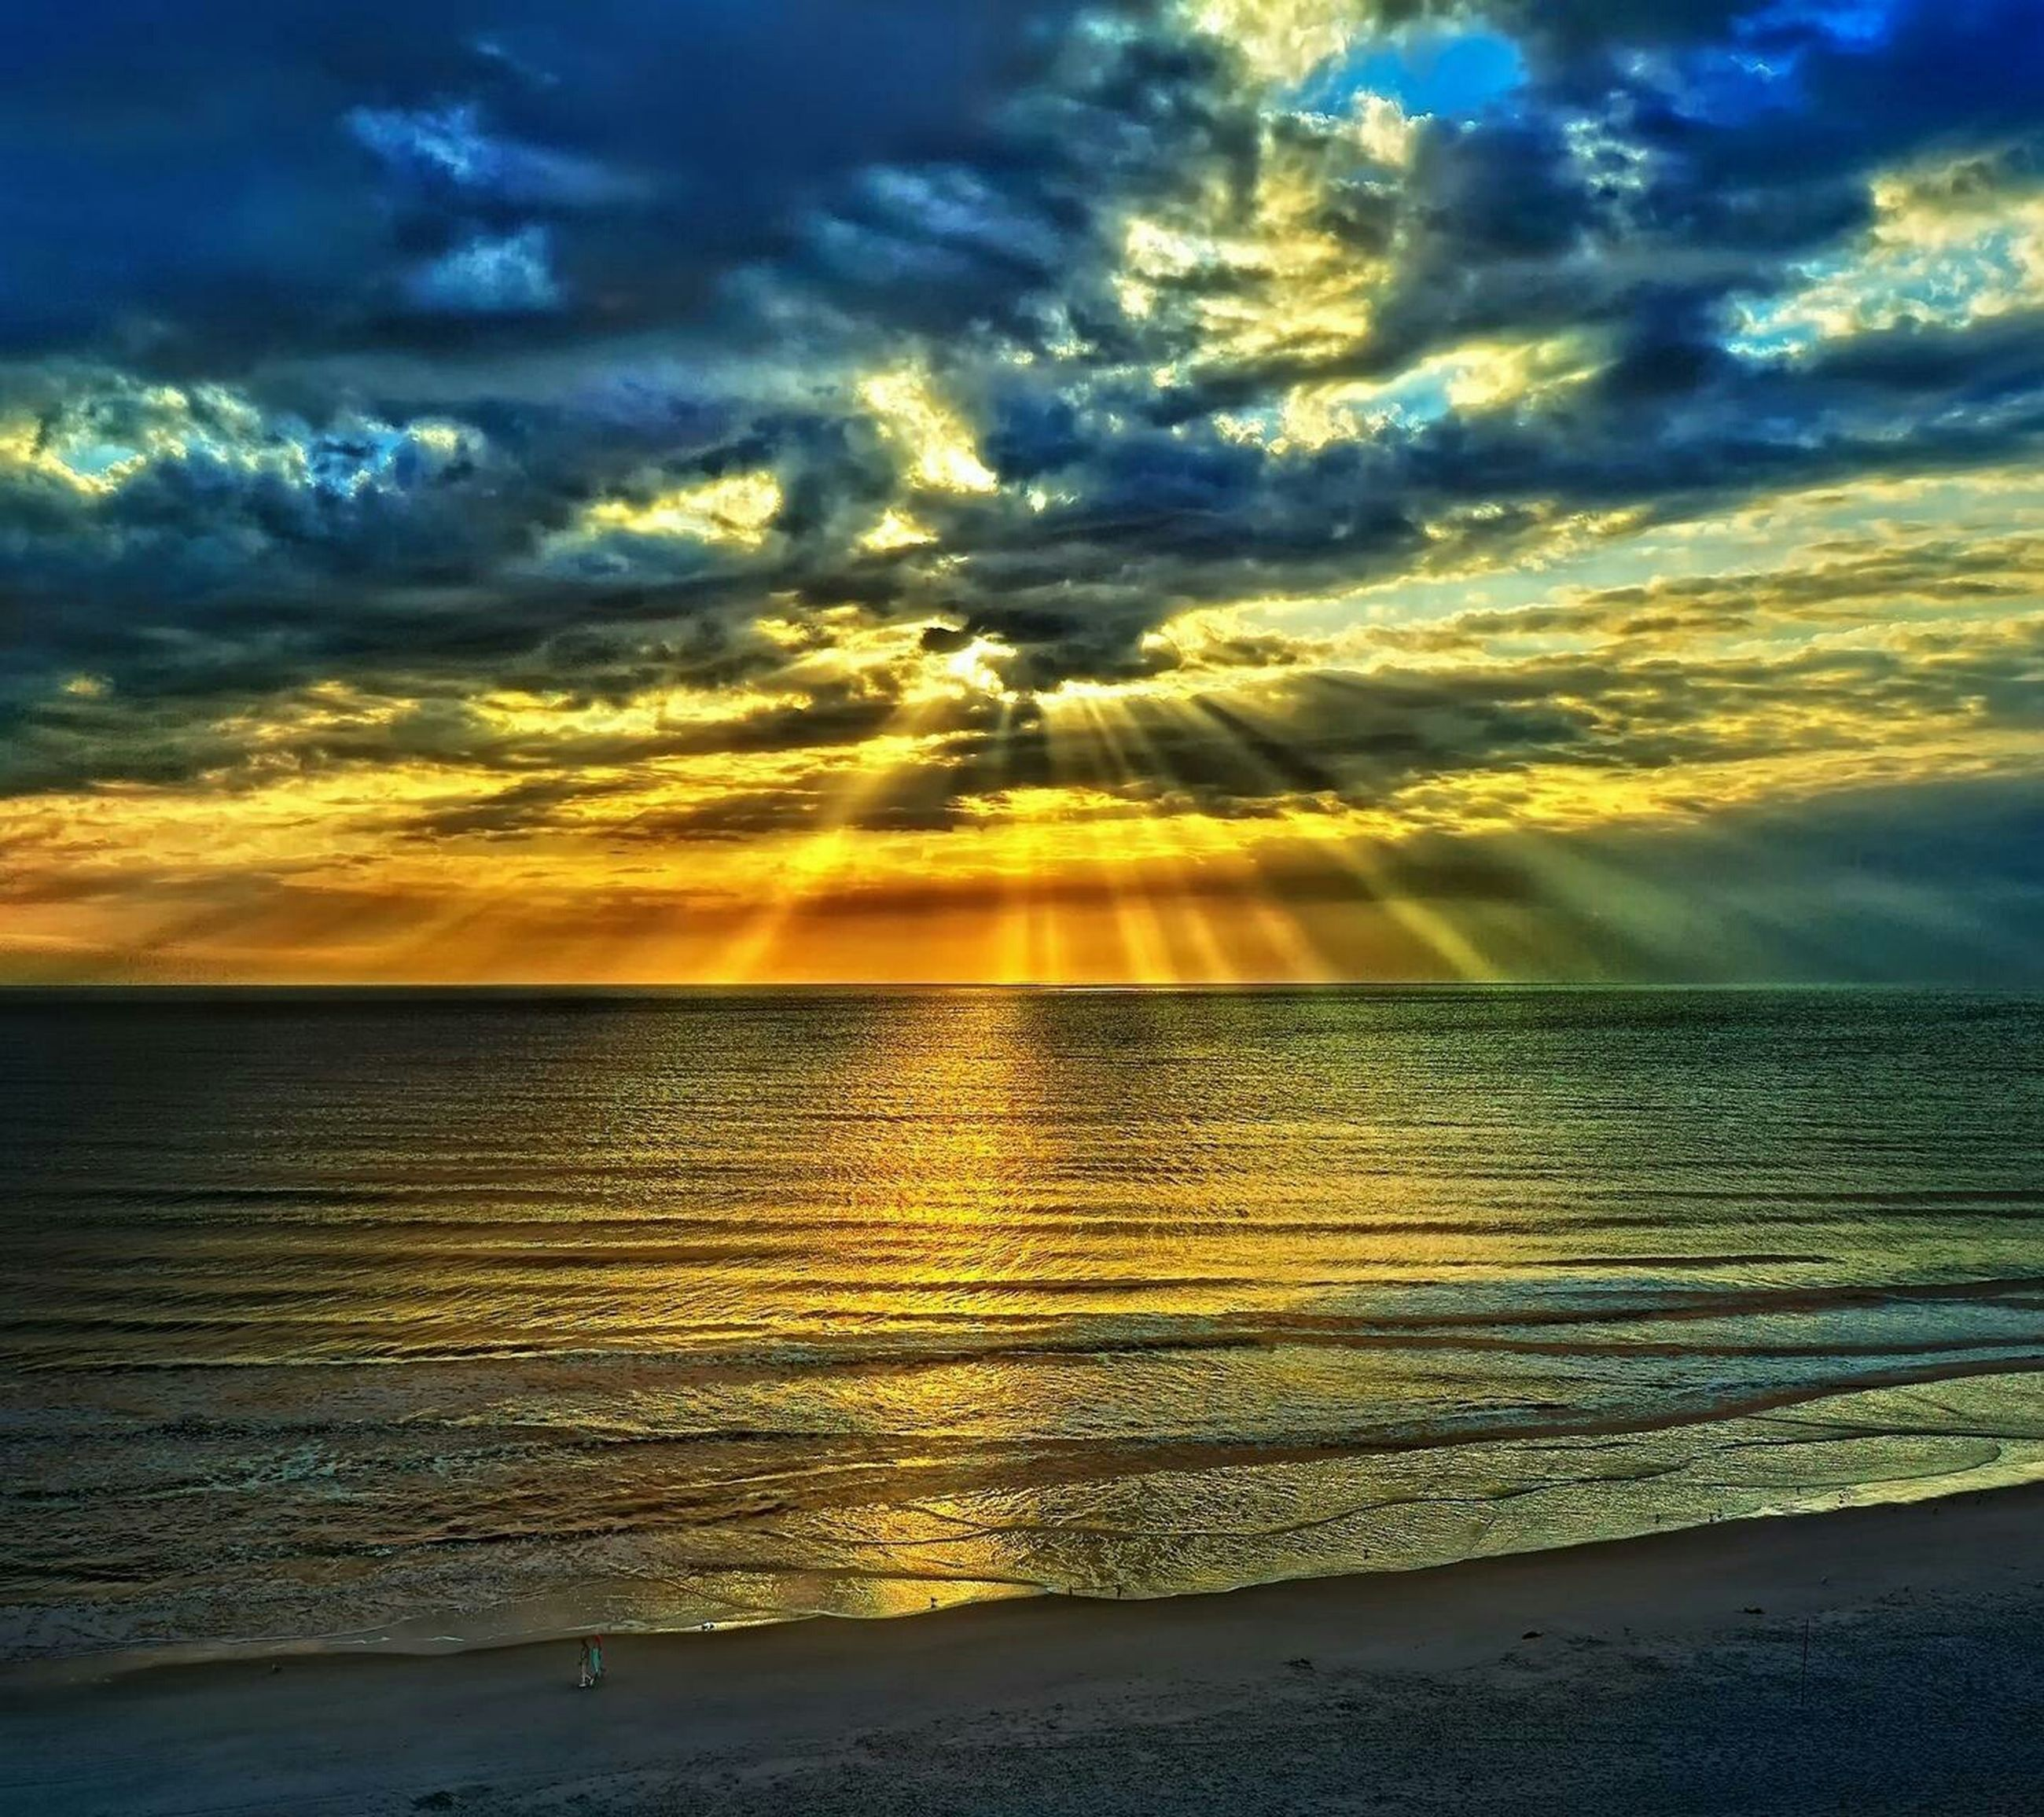 sea, sunset, scenics, sky, water, tranquil scene, beauty in nature, beach, horizon over water, tranquility, cloud - sky, idyllic, shore, nature, cloud, dramatic sky, cloudy, orange color, reflection, coastline